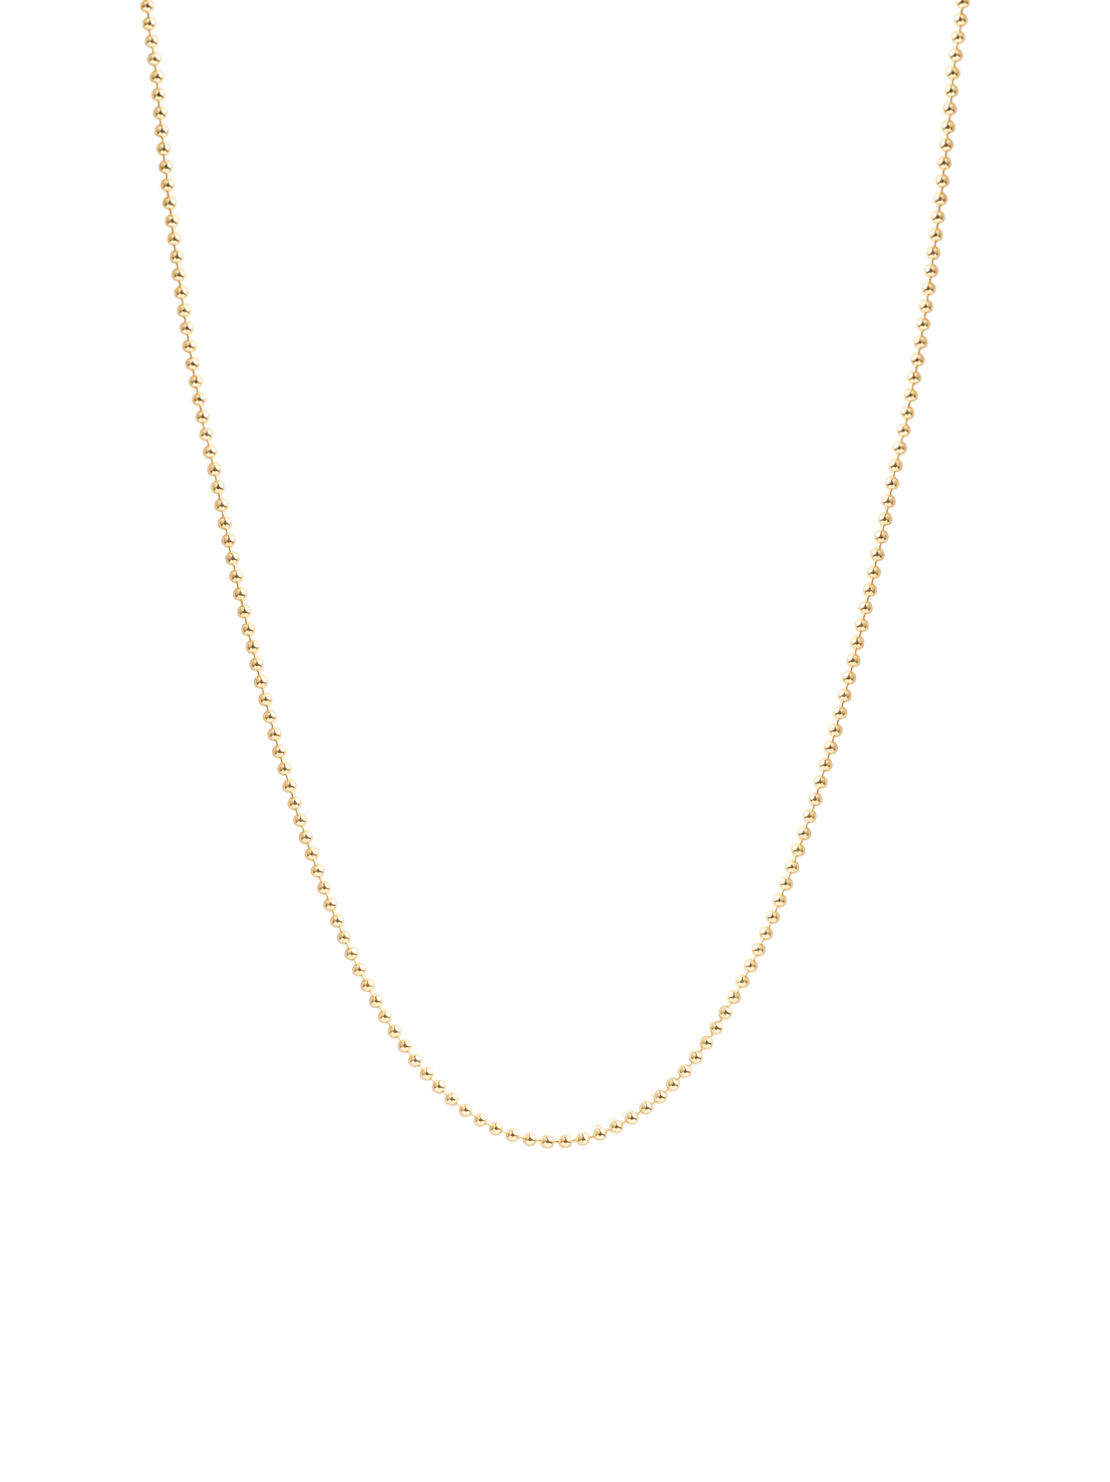 60cm Gold Ball Chain